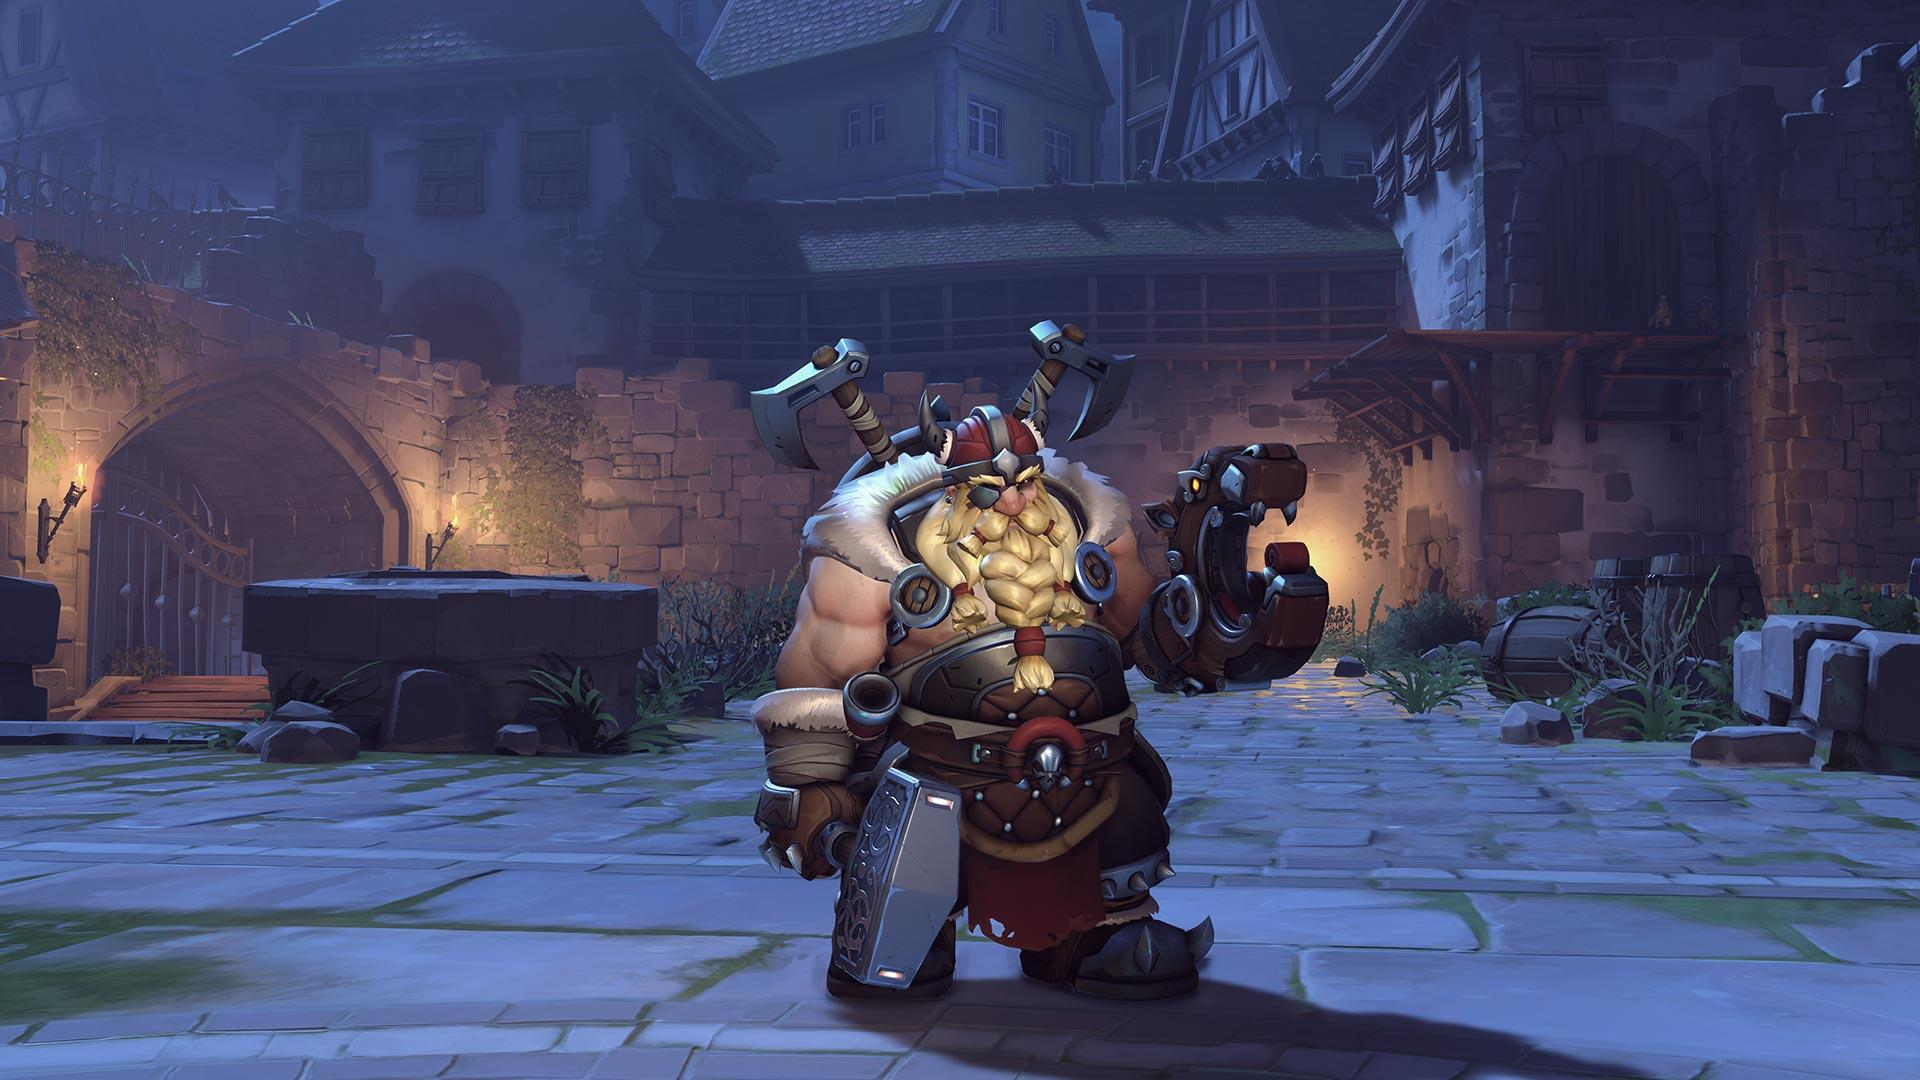 overwatch halloween terror 2017 new skins 5 - Скины на хэллоуин Overwatch 2017cd